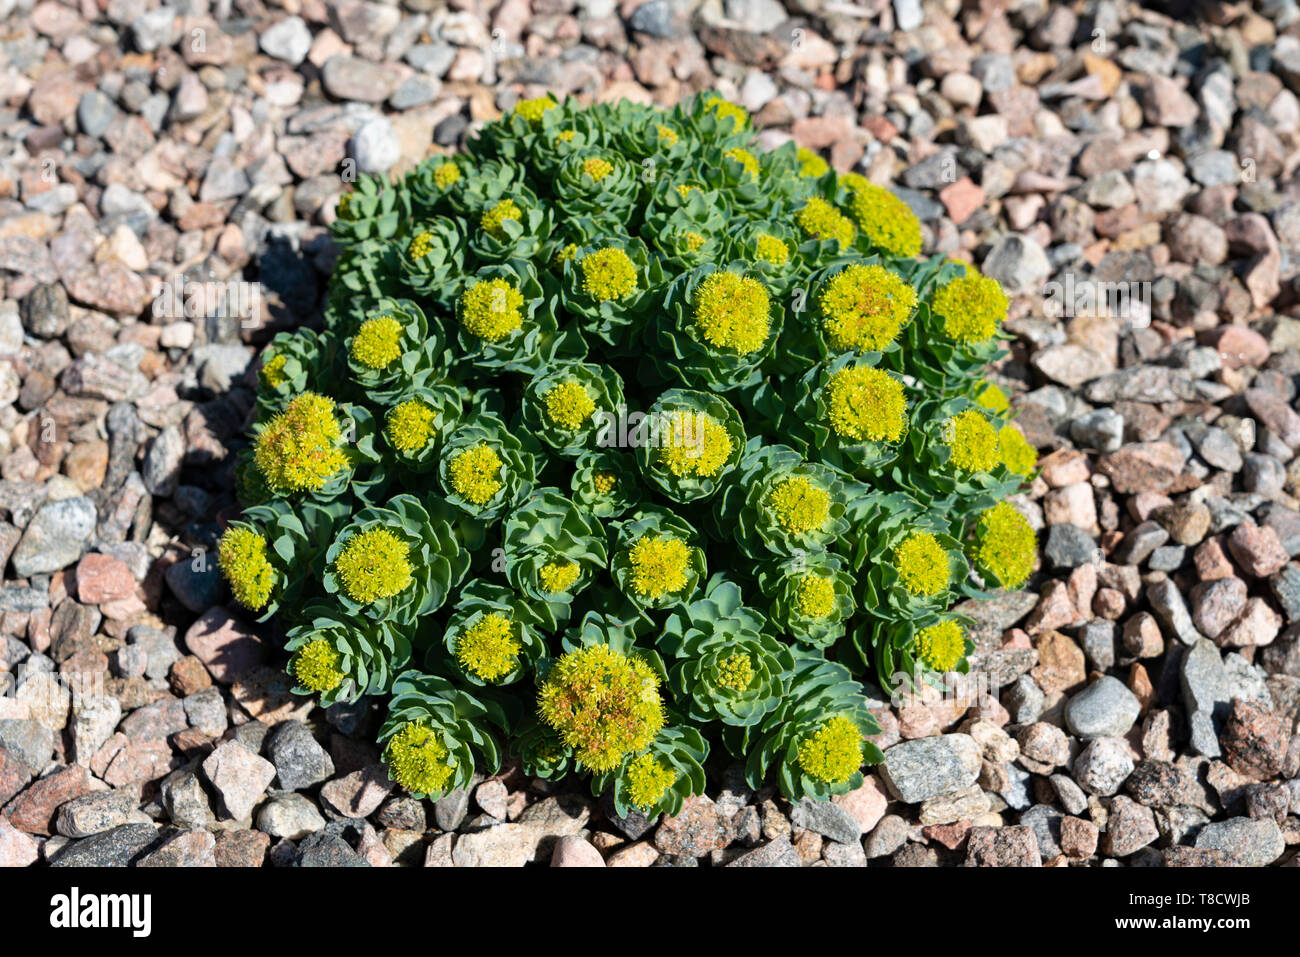 Rhodiola Rosea or Rock Rose growing at Dunnet Bay Distillery in Caithness on  the North Coast 500 scenic driving route in northern Scotland, UK - Stock Image